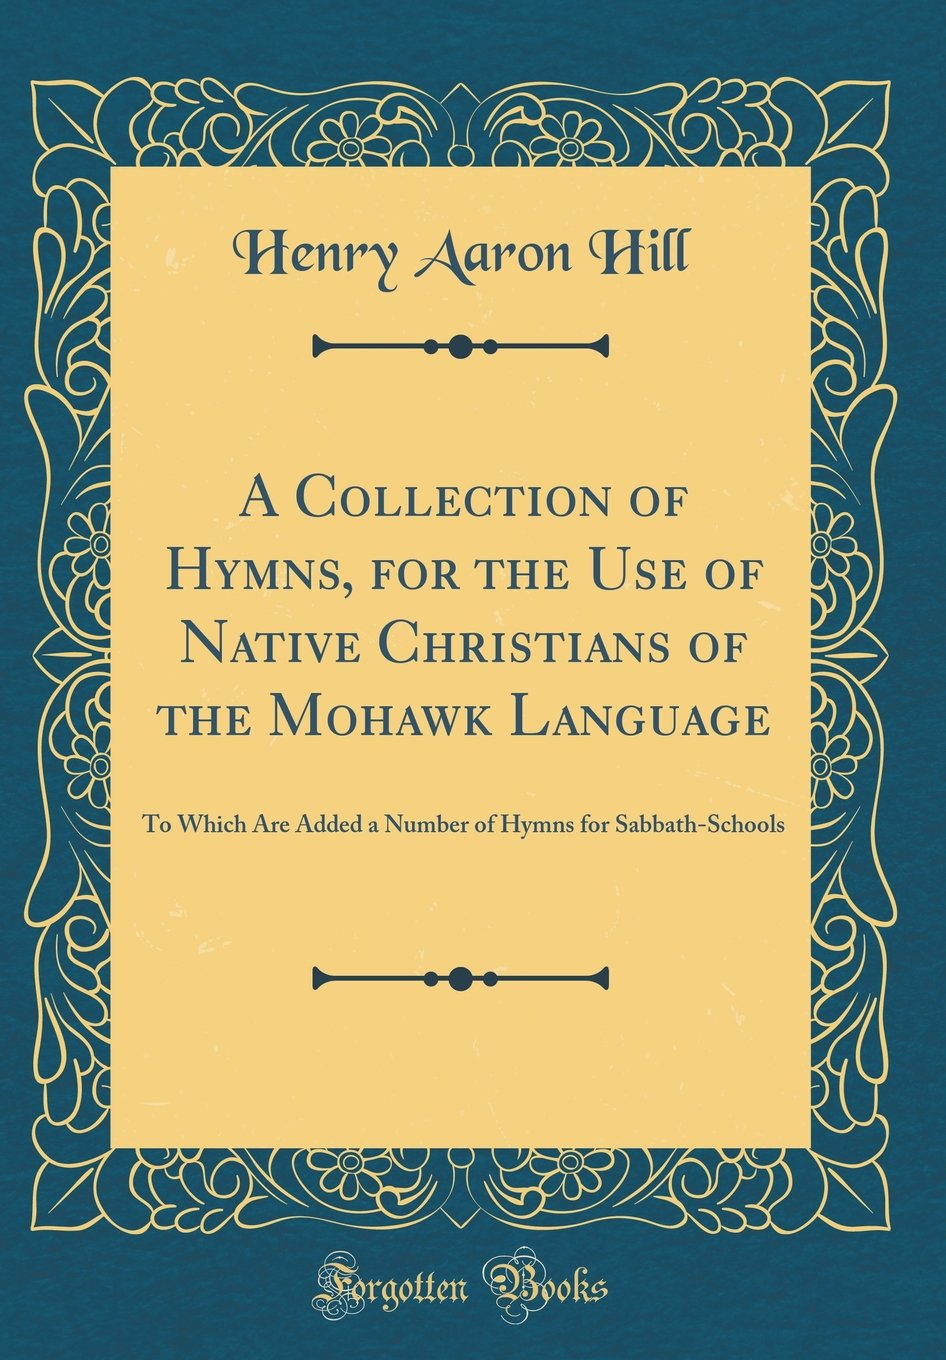 A Collection of Hymns, for the Use of Native Christians of the Mohawk Language: To Which Are Added a Number of Hymns for Sabbath-Schools (Classic Reprint)